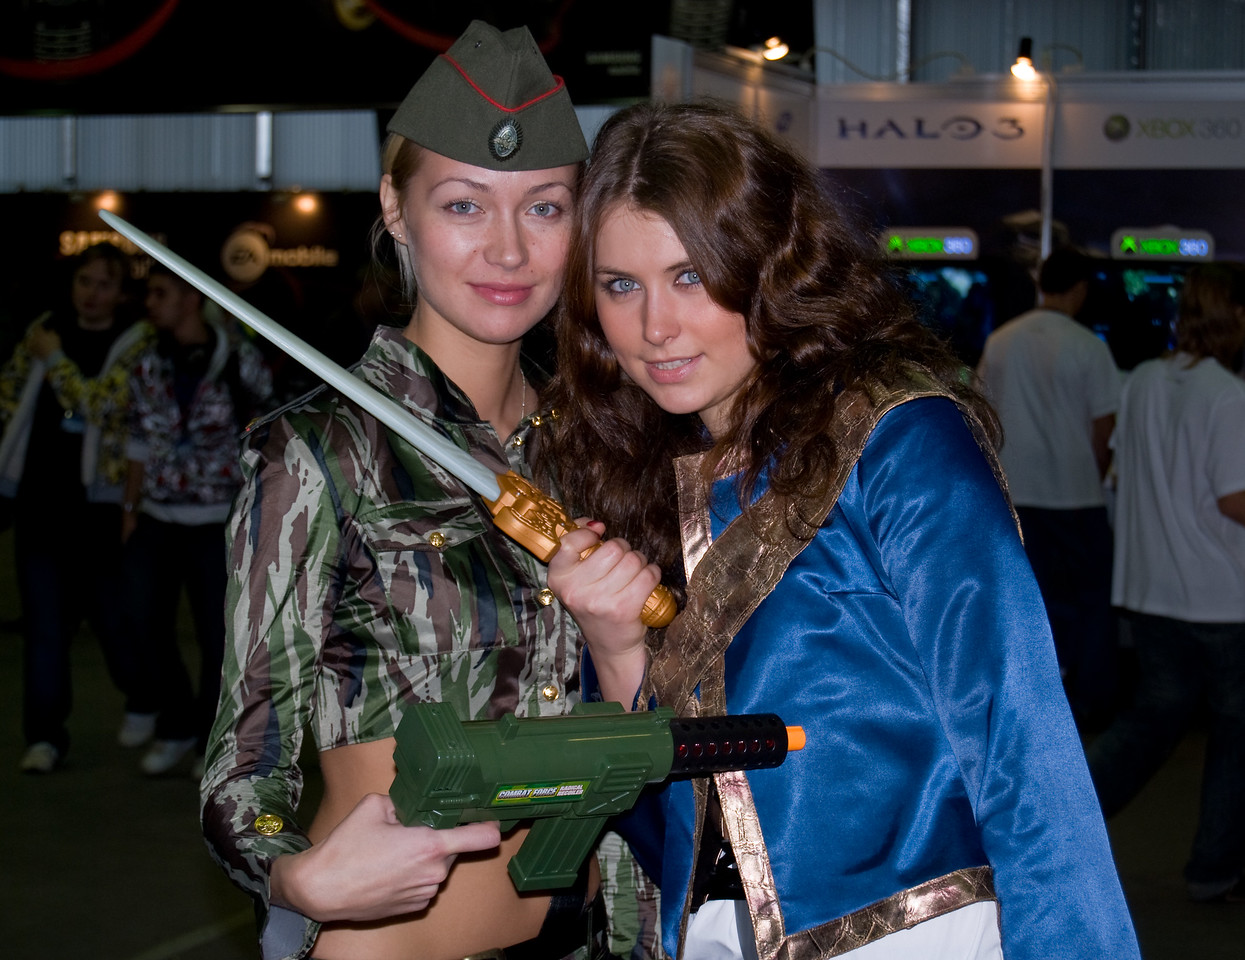 Booth-babes of Igromir 2008